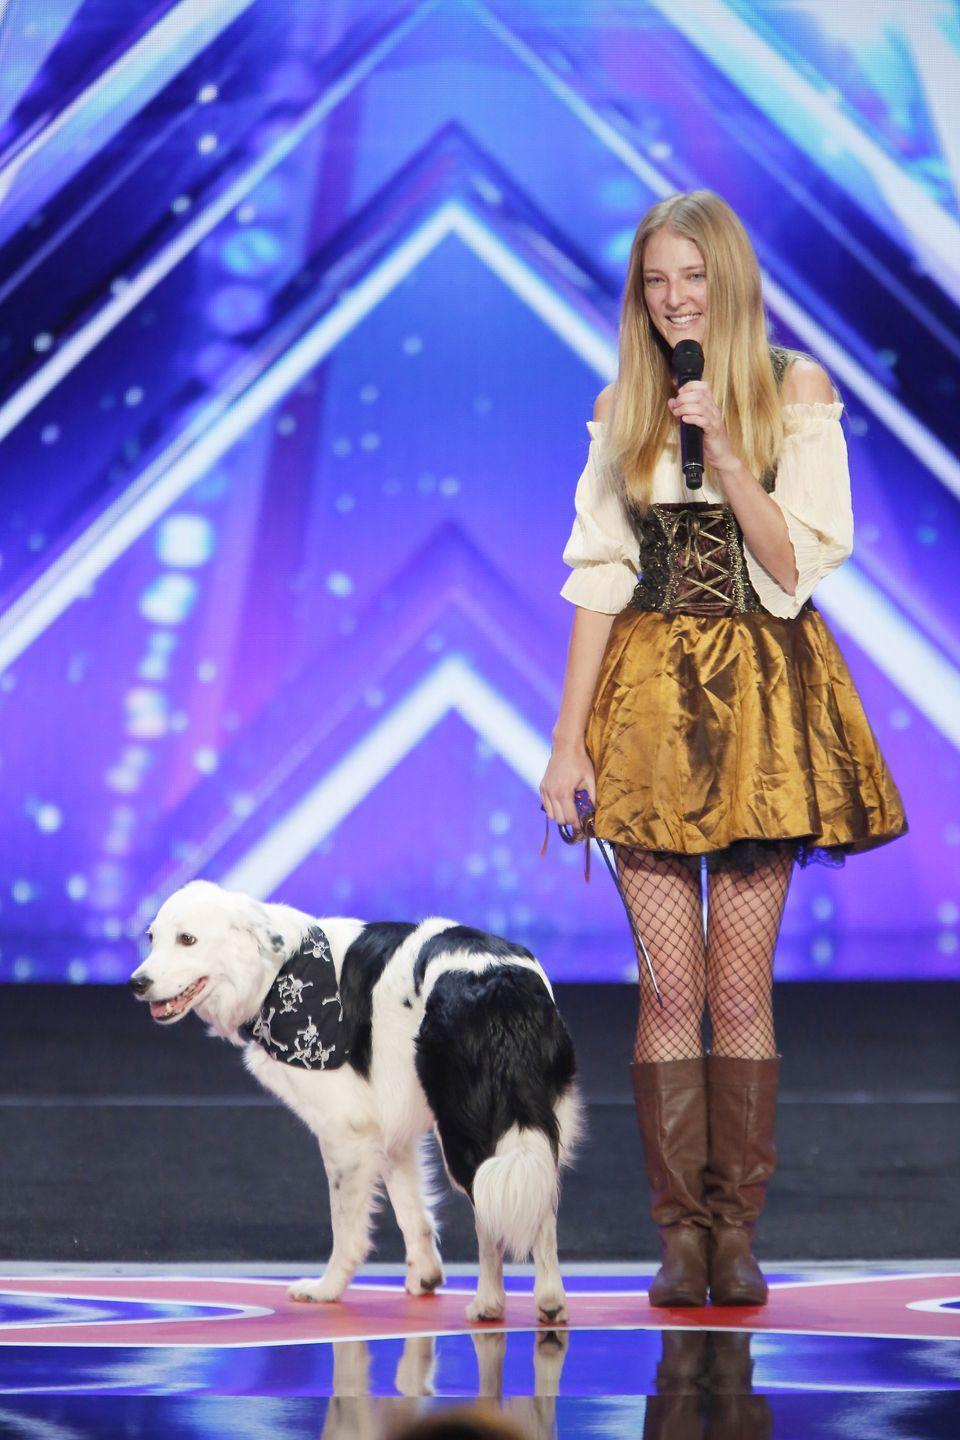 """<p>To prevent people from showing up with wild animals, the <em>AGT </em>team requires that contestants bring vaccine records for any pets. Contestants should also <a href=""""https://www.americasgottalentauditions.com/faq/open-call/"""" rel=""""nofollow noopener"""" target=""""_blank"""" data-ylk=""""slk:fill out a form online"""" class=""""link rapid-noclick-resp"""">fill out a form online</a> to find out if there are any additional steps they need to take before the big day. </p>"""